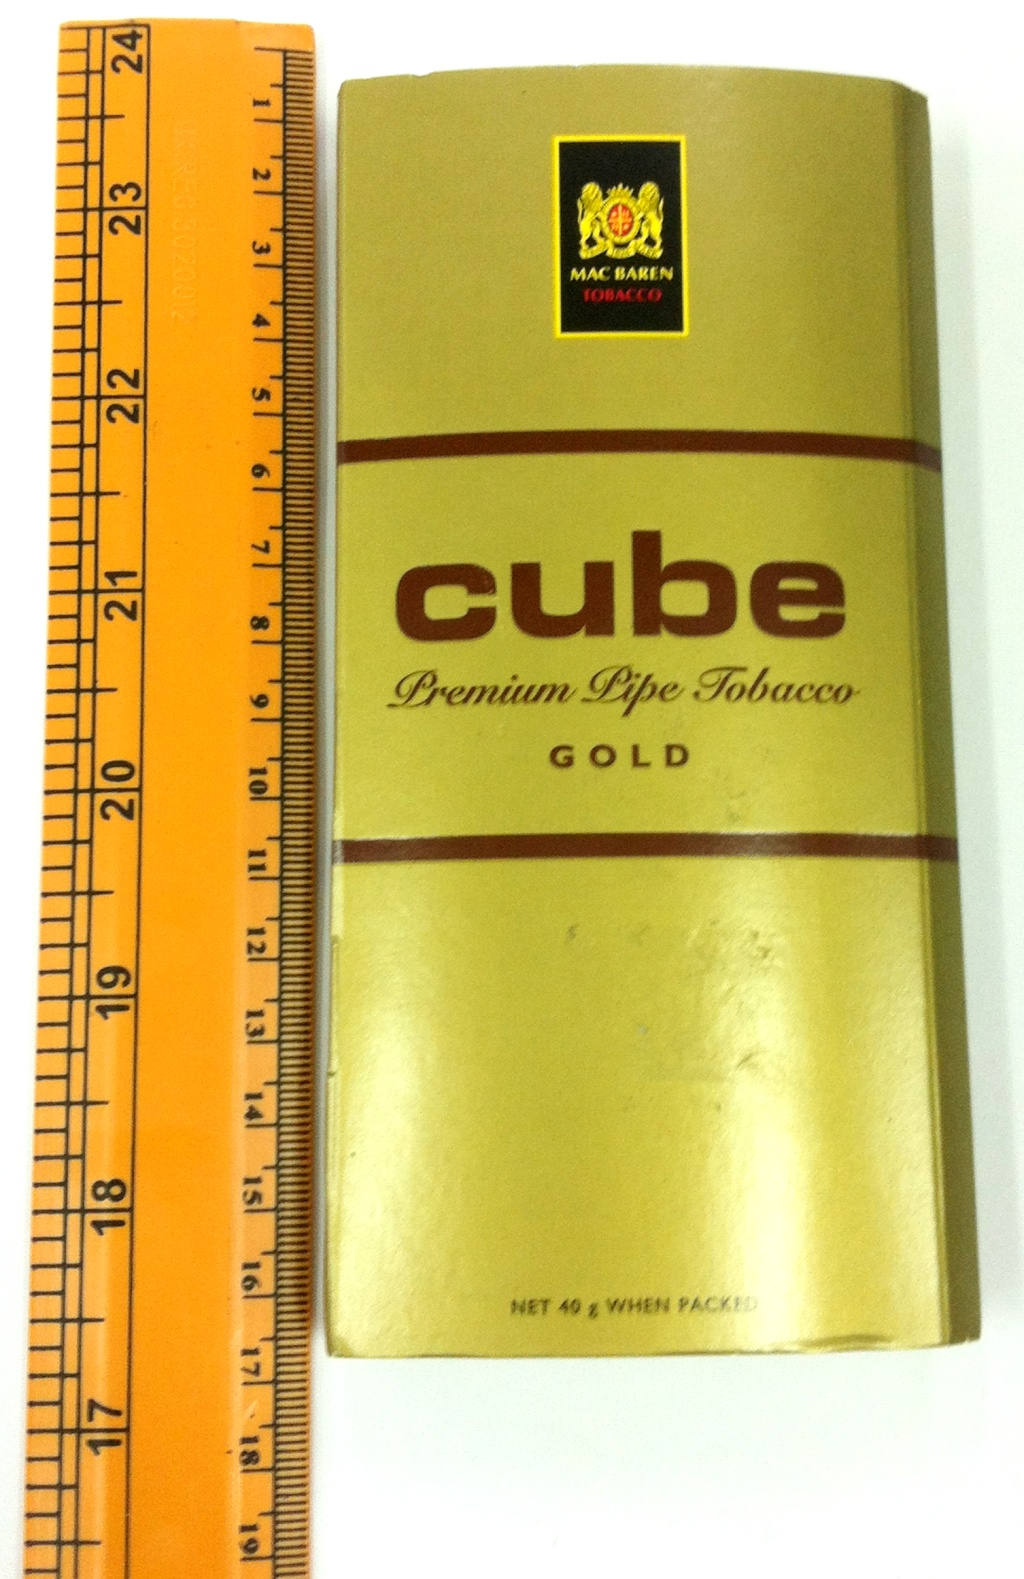 Mac Baren Cube Pipe Tobacco 40g Largest And Cheapest